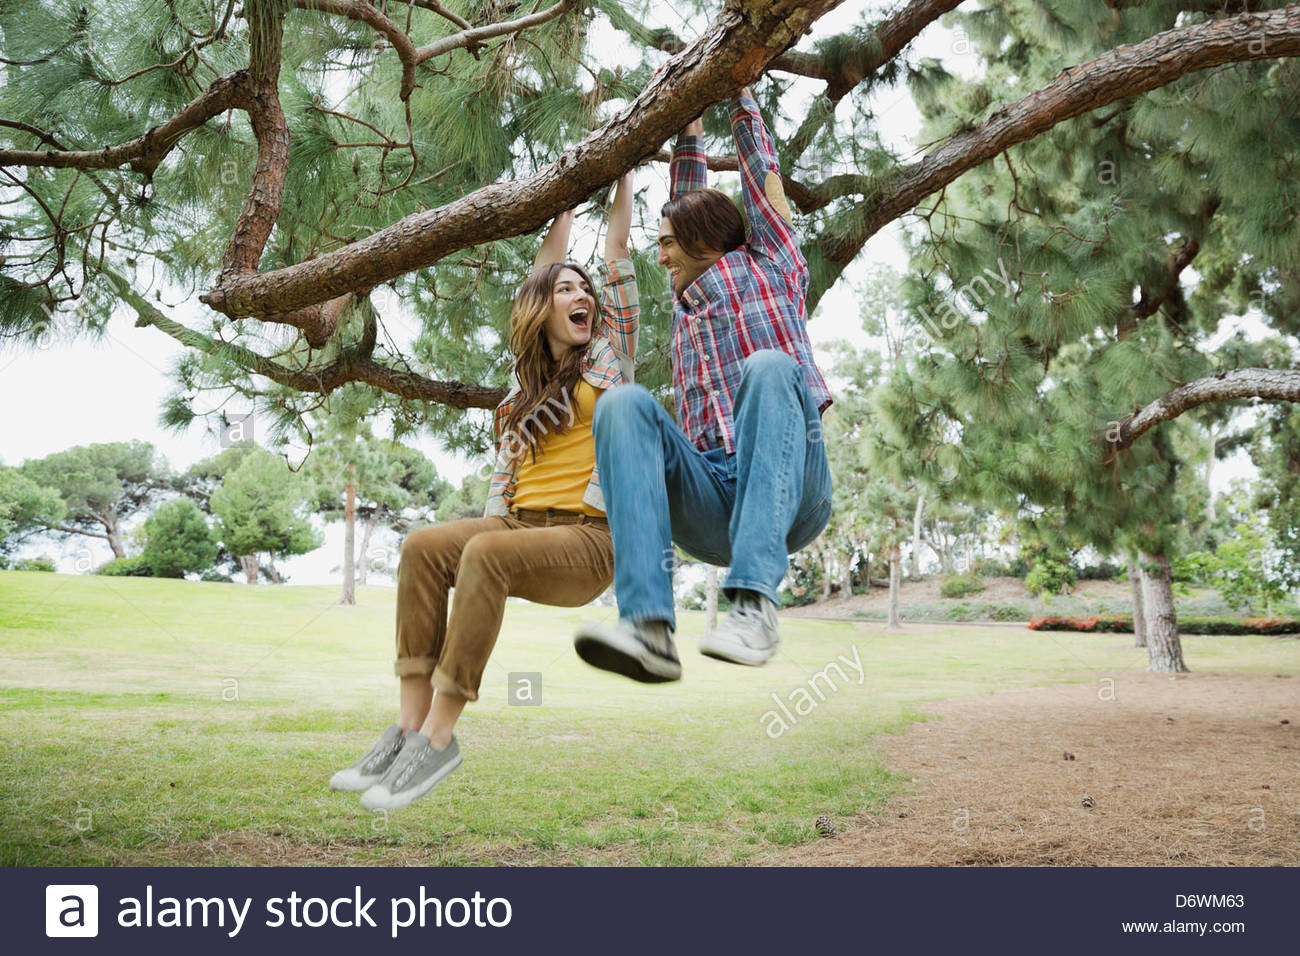 Playful young couple looking at each other while swinging on tree branch in park - Stock Image